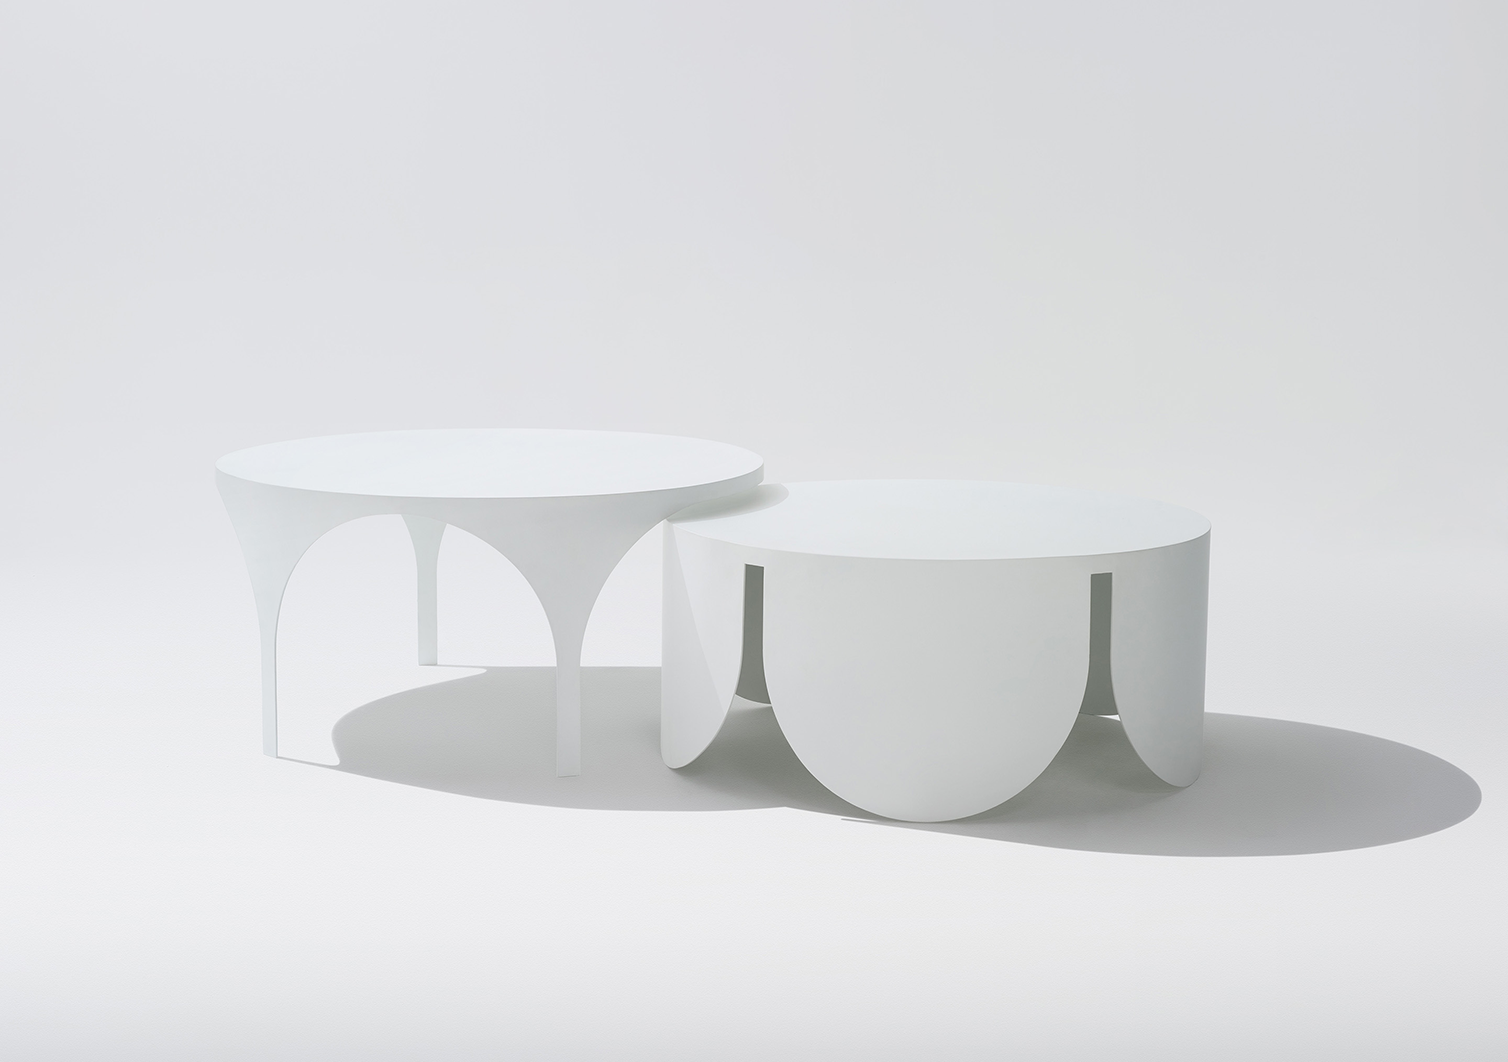 muji coffee table images dining room interesting image of